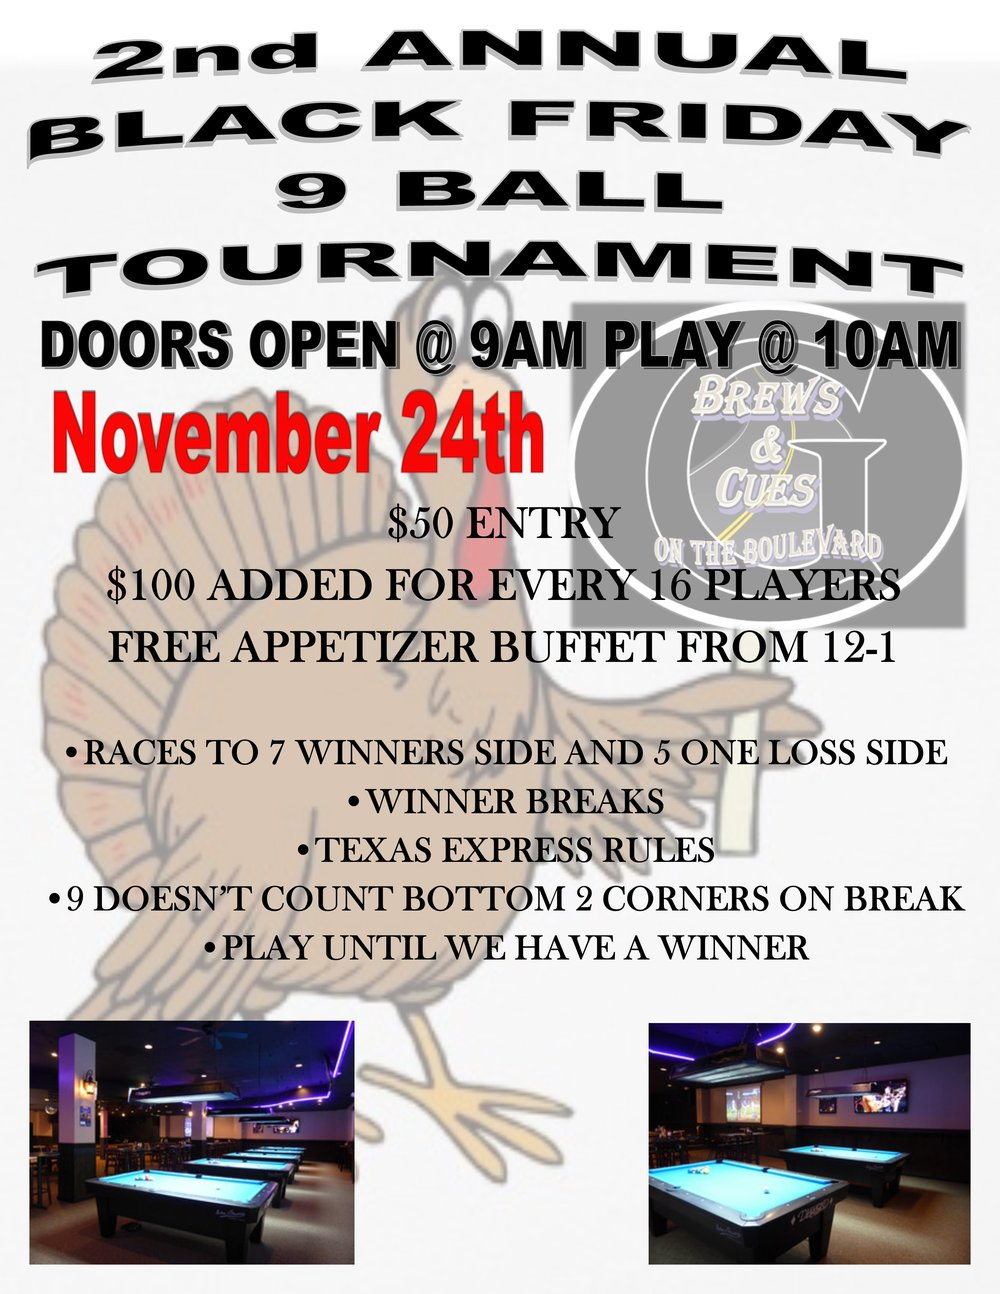 2nd annual Black Friday tourney 8.5x11.jpg